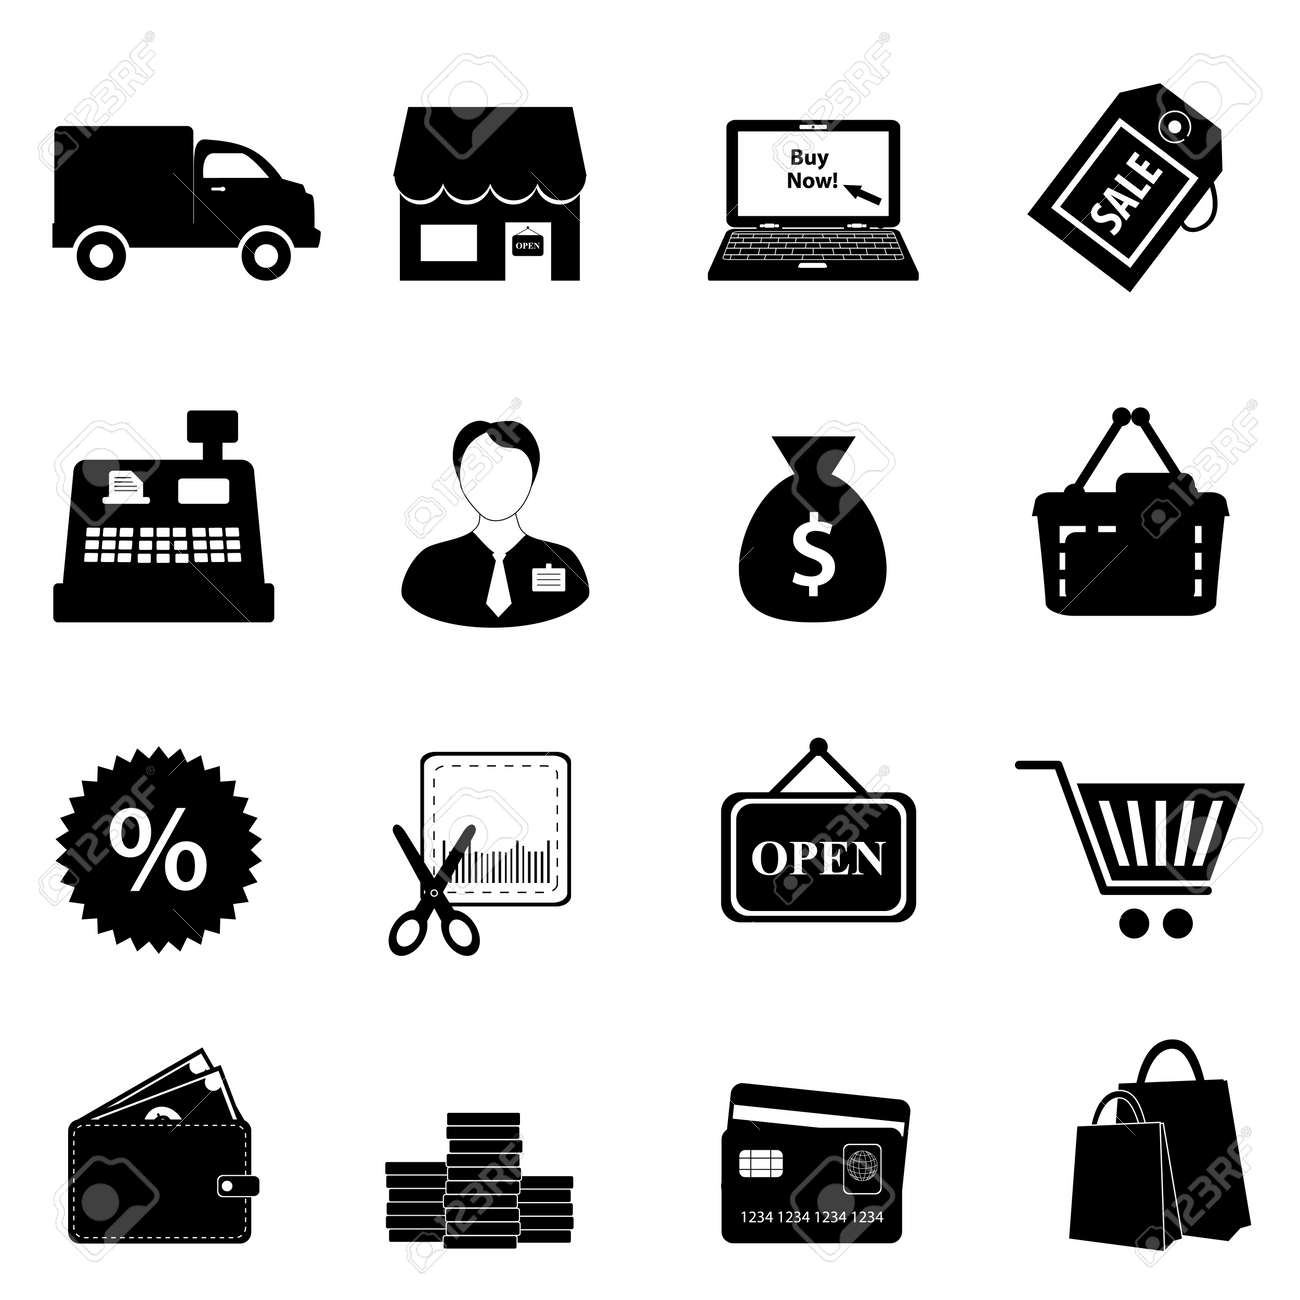 Shopping icon set in black Stock Vector - 11381938